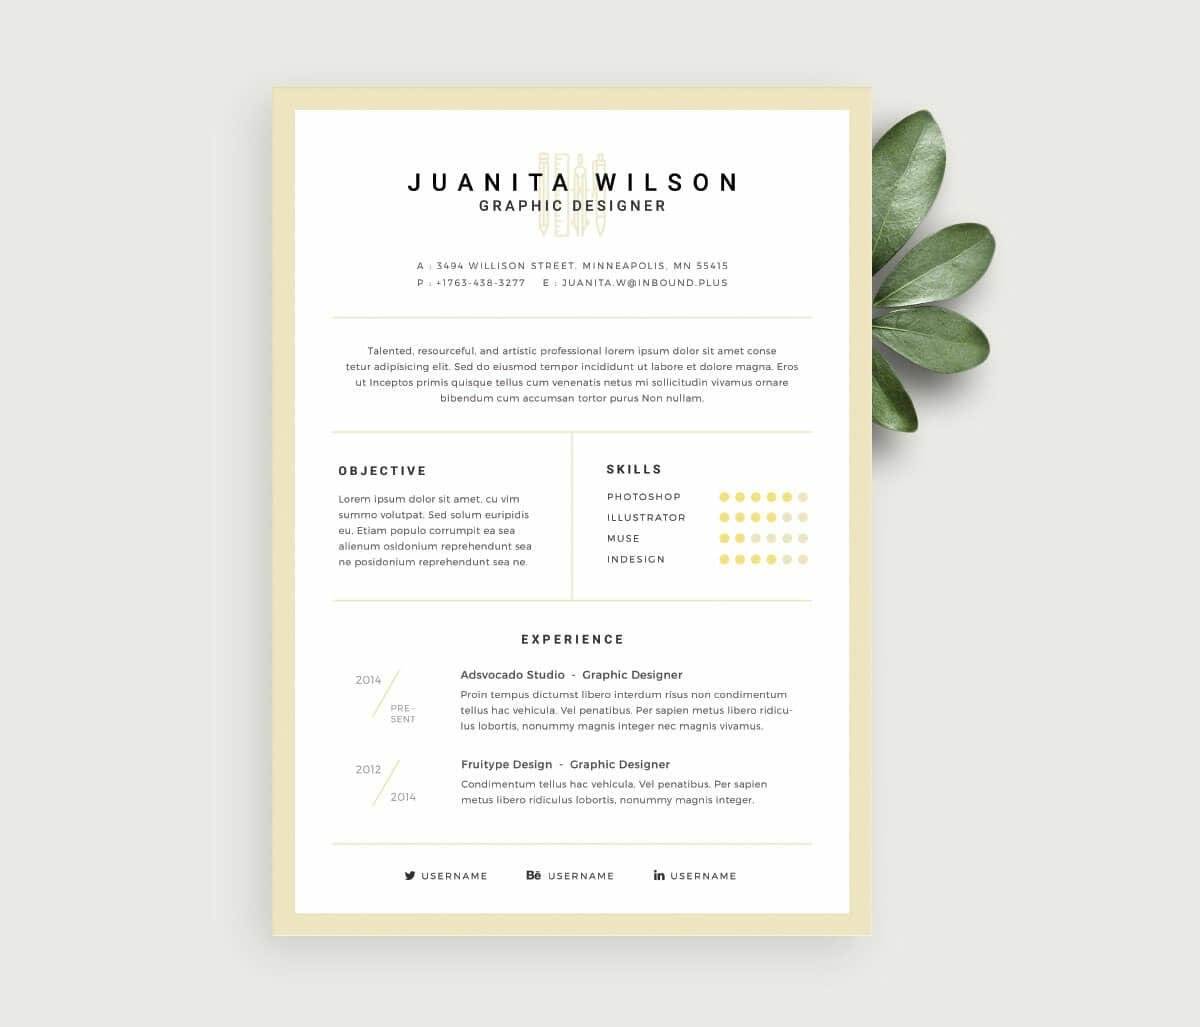 Free Resume Templates: 17 Downloadable Resume Templates to Use